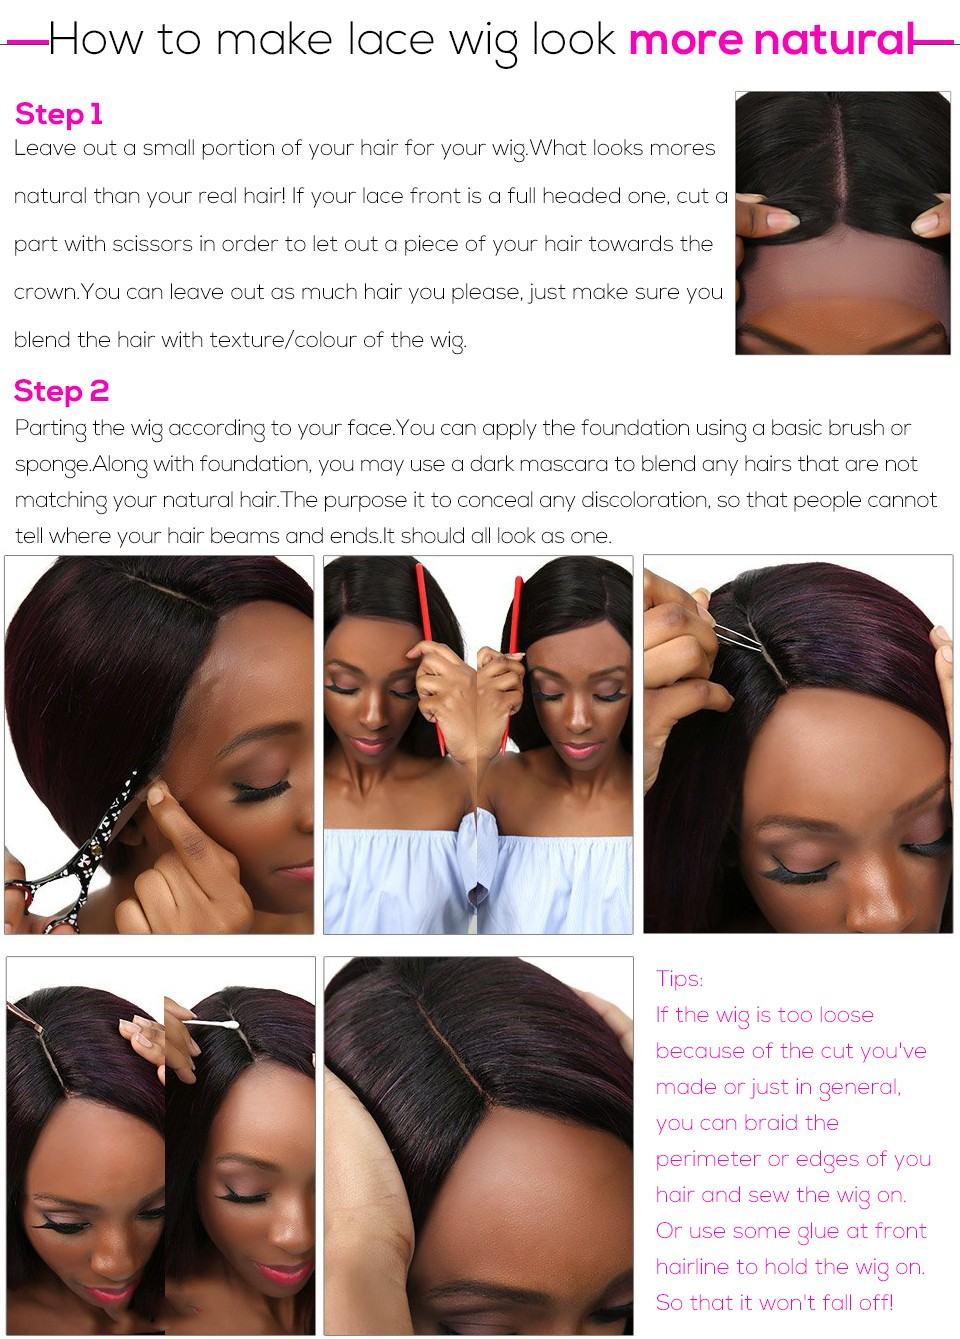 How to make lace wig look more natural